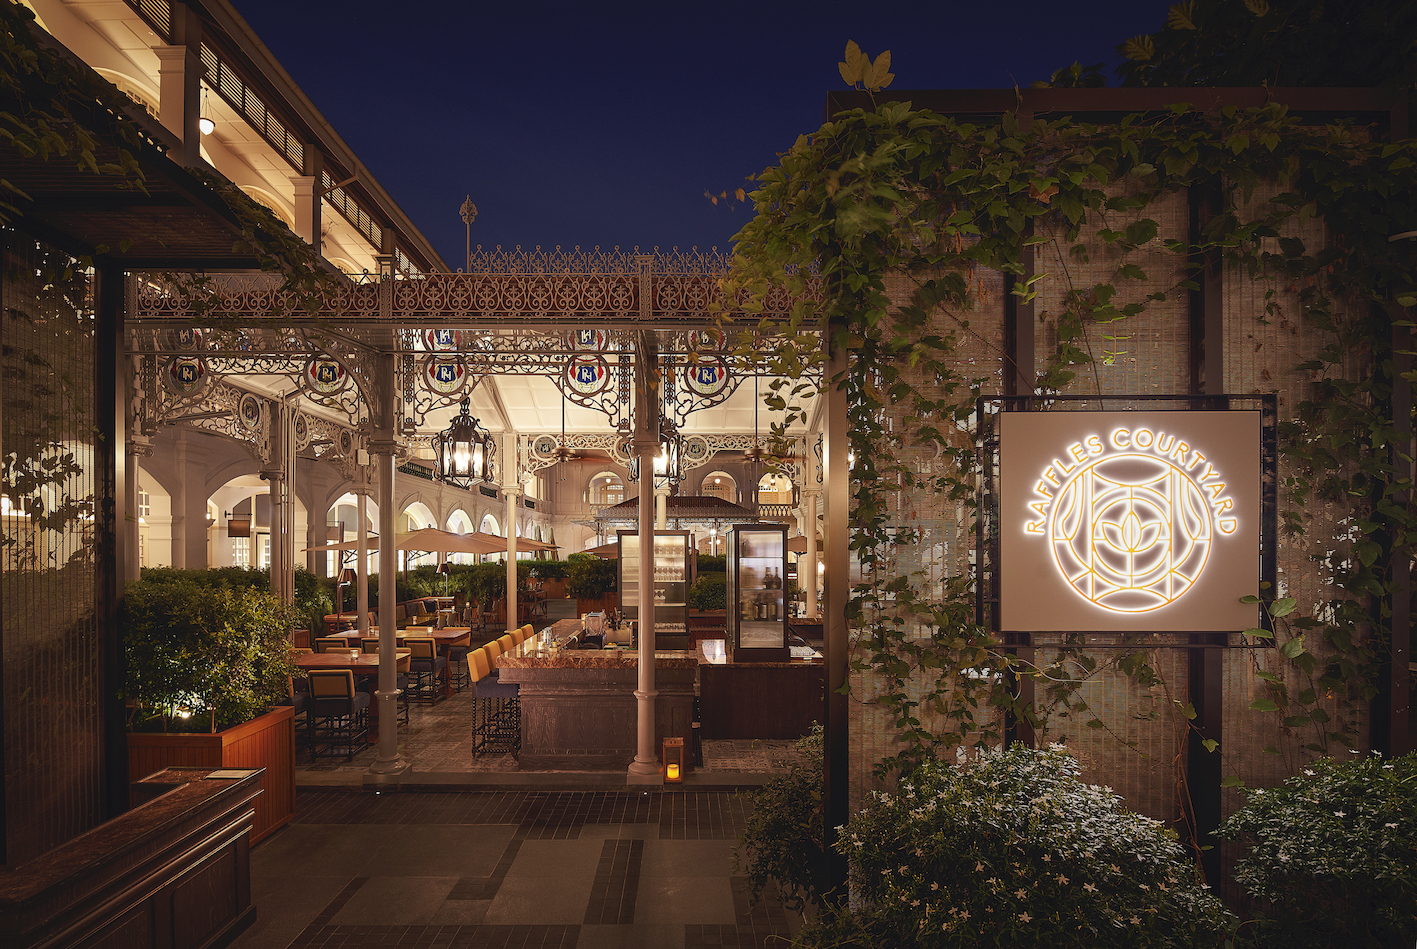 Join us at the exclusive opening party of the newly restored Raffles Courtyard